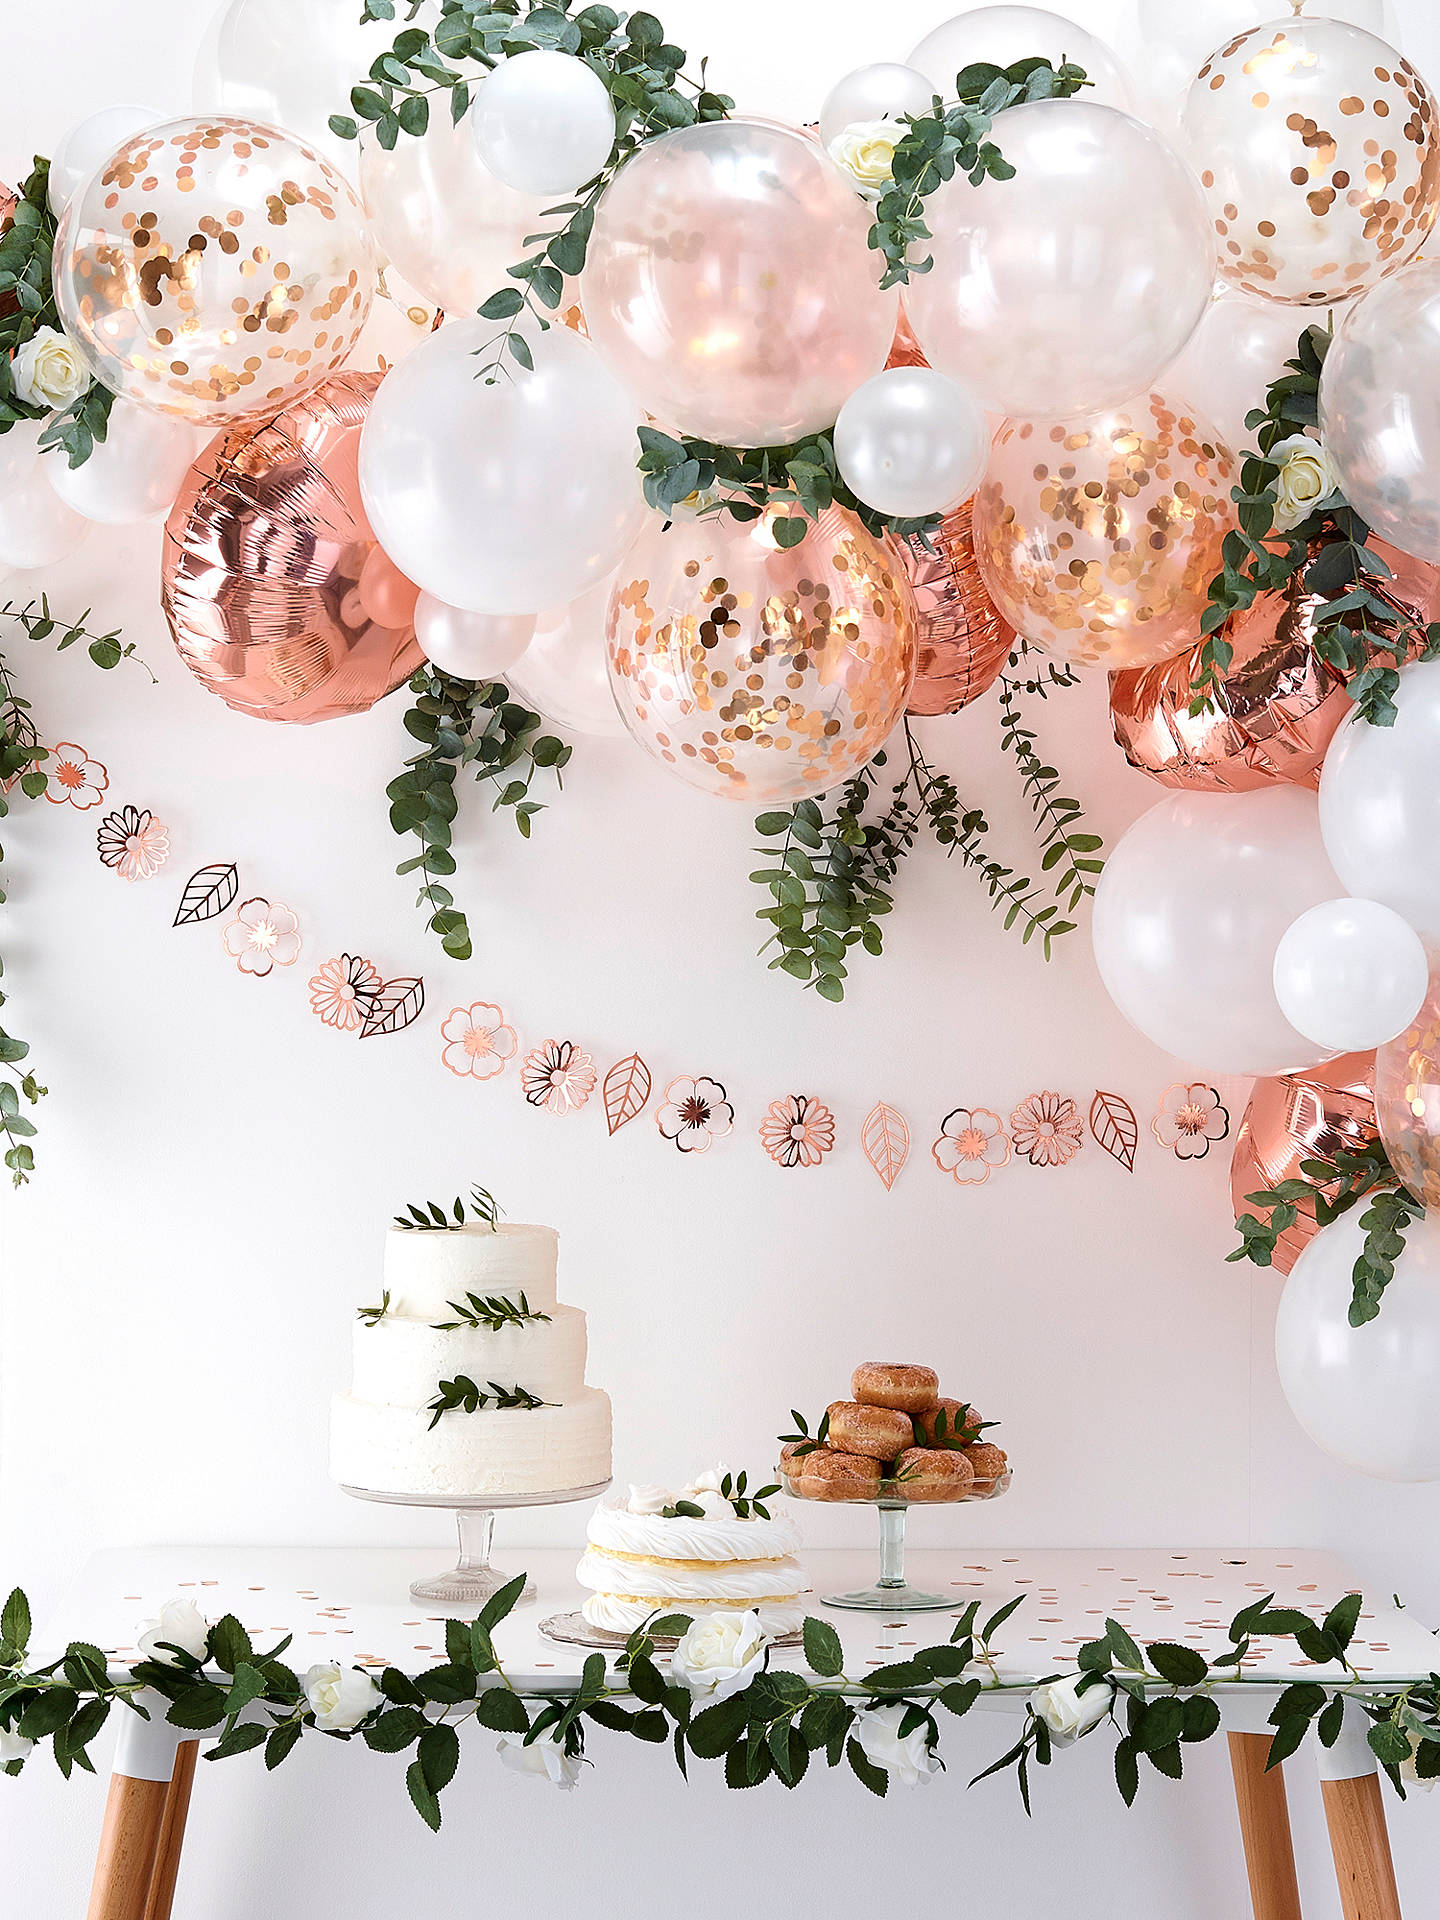 Buy Ginger Ray Rose Gold Balloon Arch Online at johnlewis.com